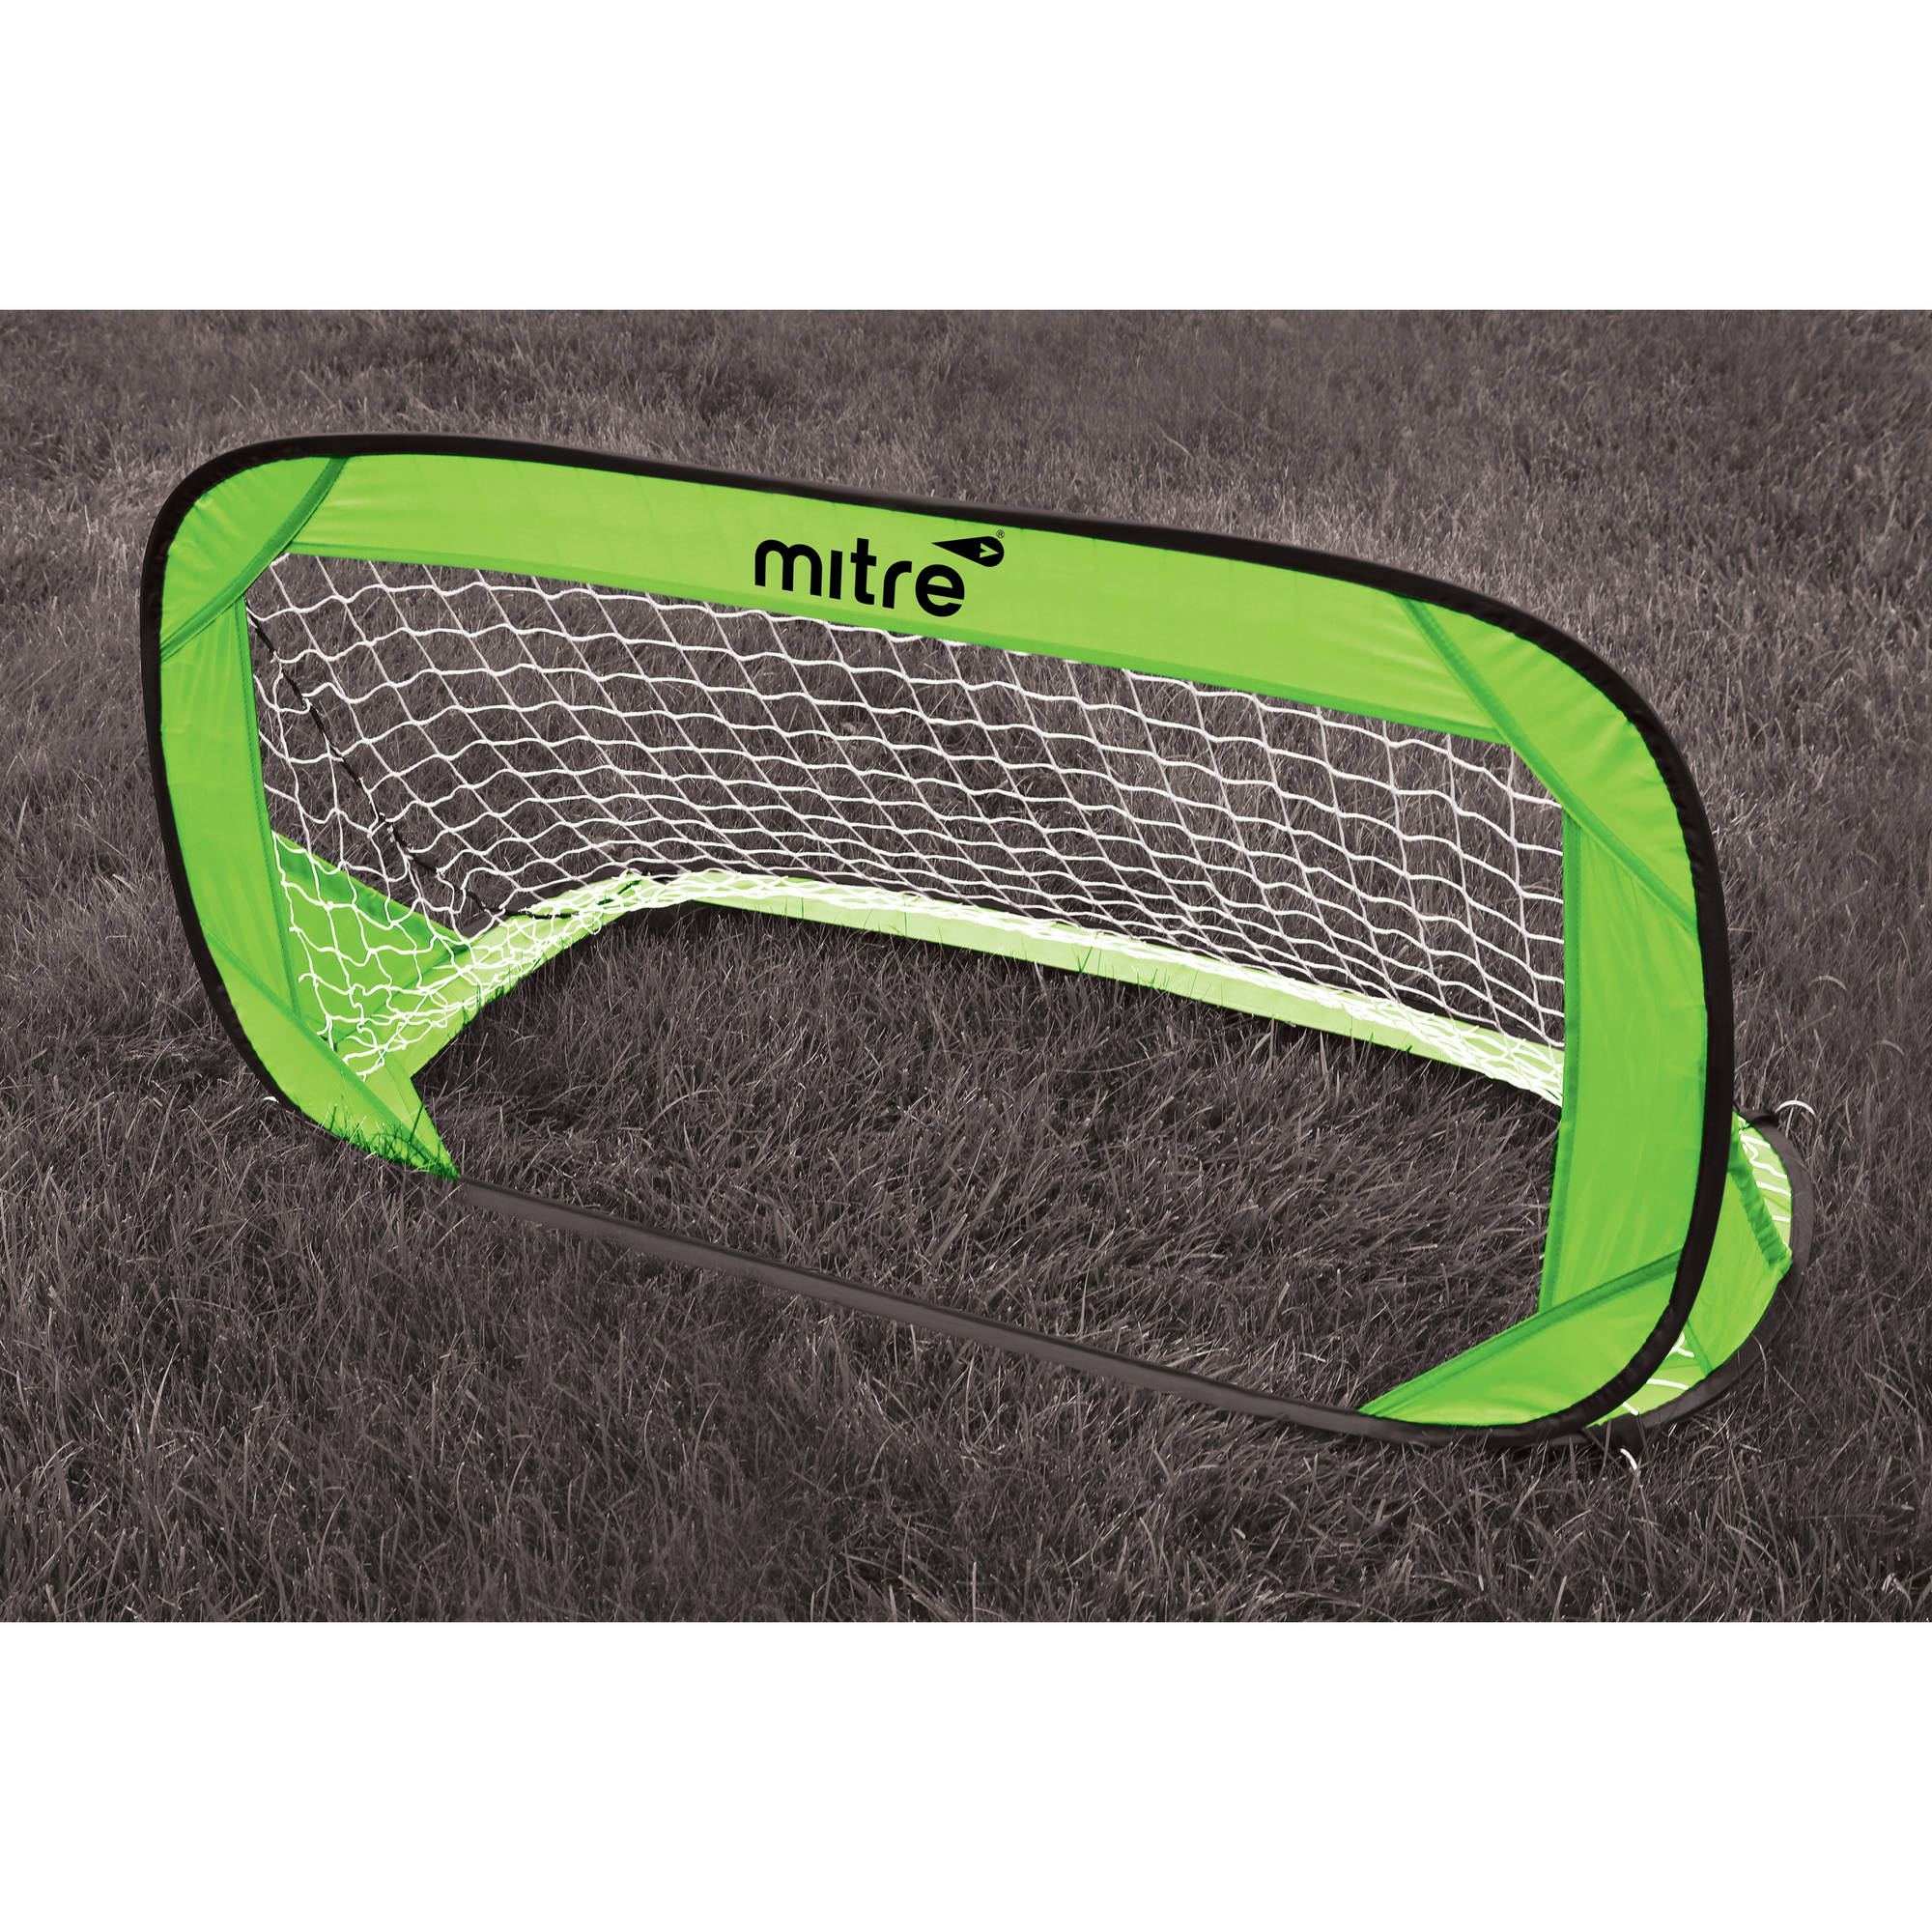 Mitre Popup Soccer Goal by